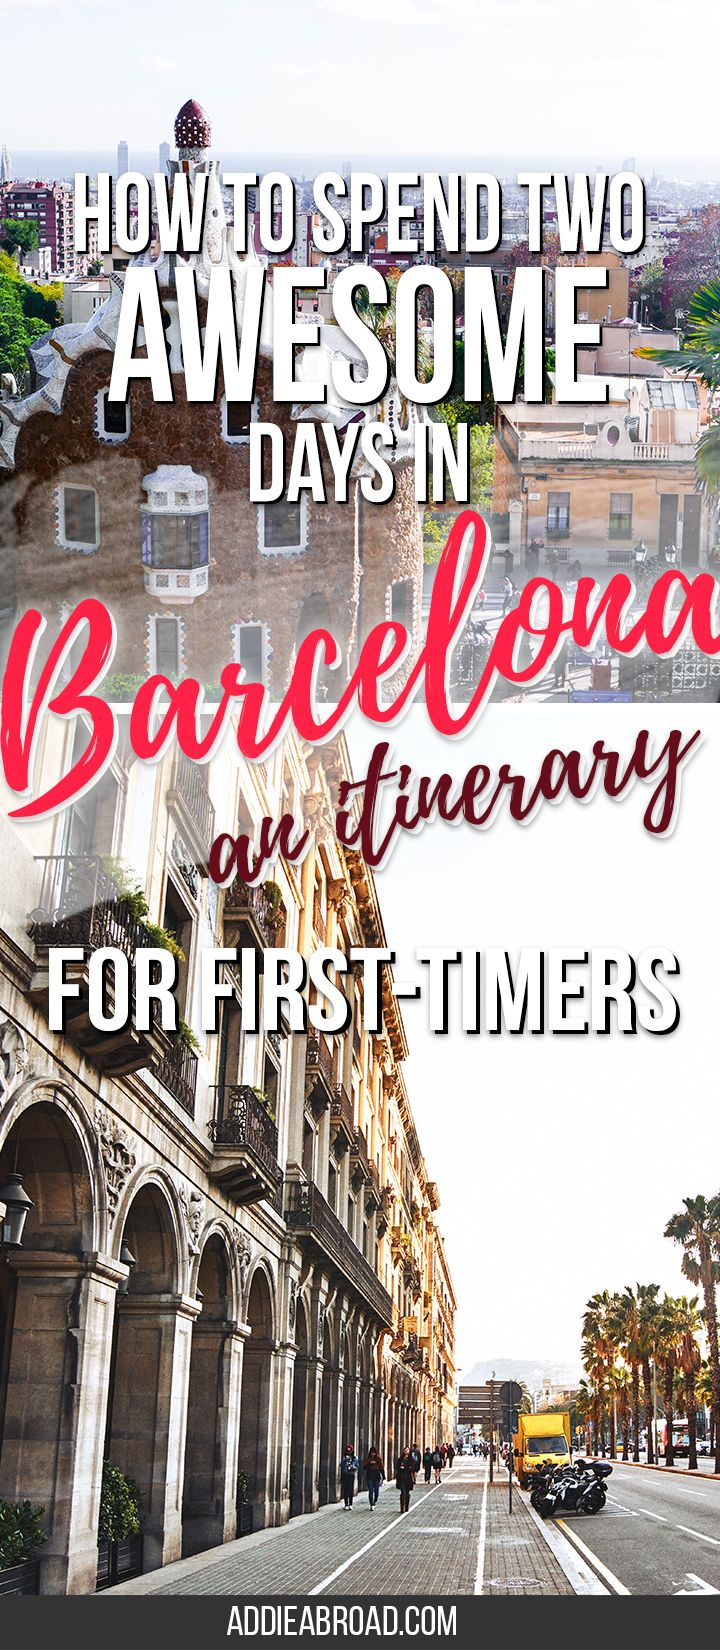 Barcelona is a big city, so there's a lot of ground to cover and a lot of amazing things to see. Here's an awesome itinerary that details how to spend the best 2 days in Barcelona. via @addieabroad